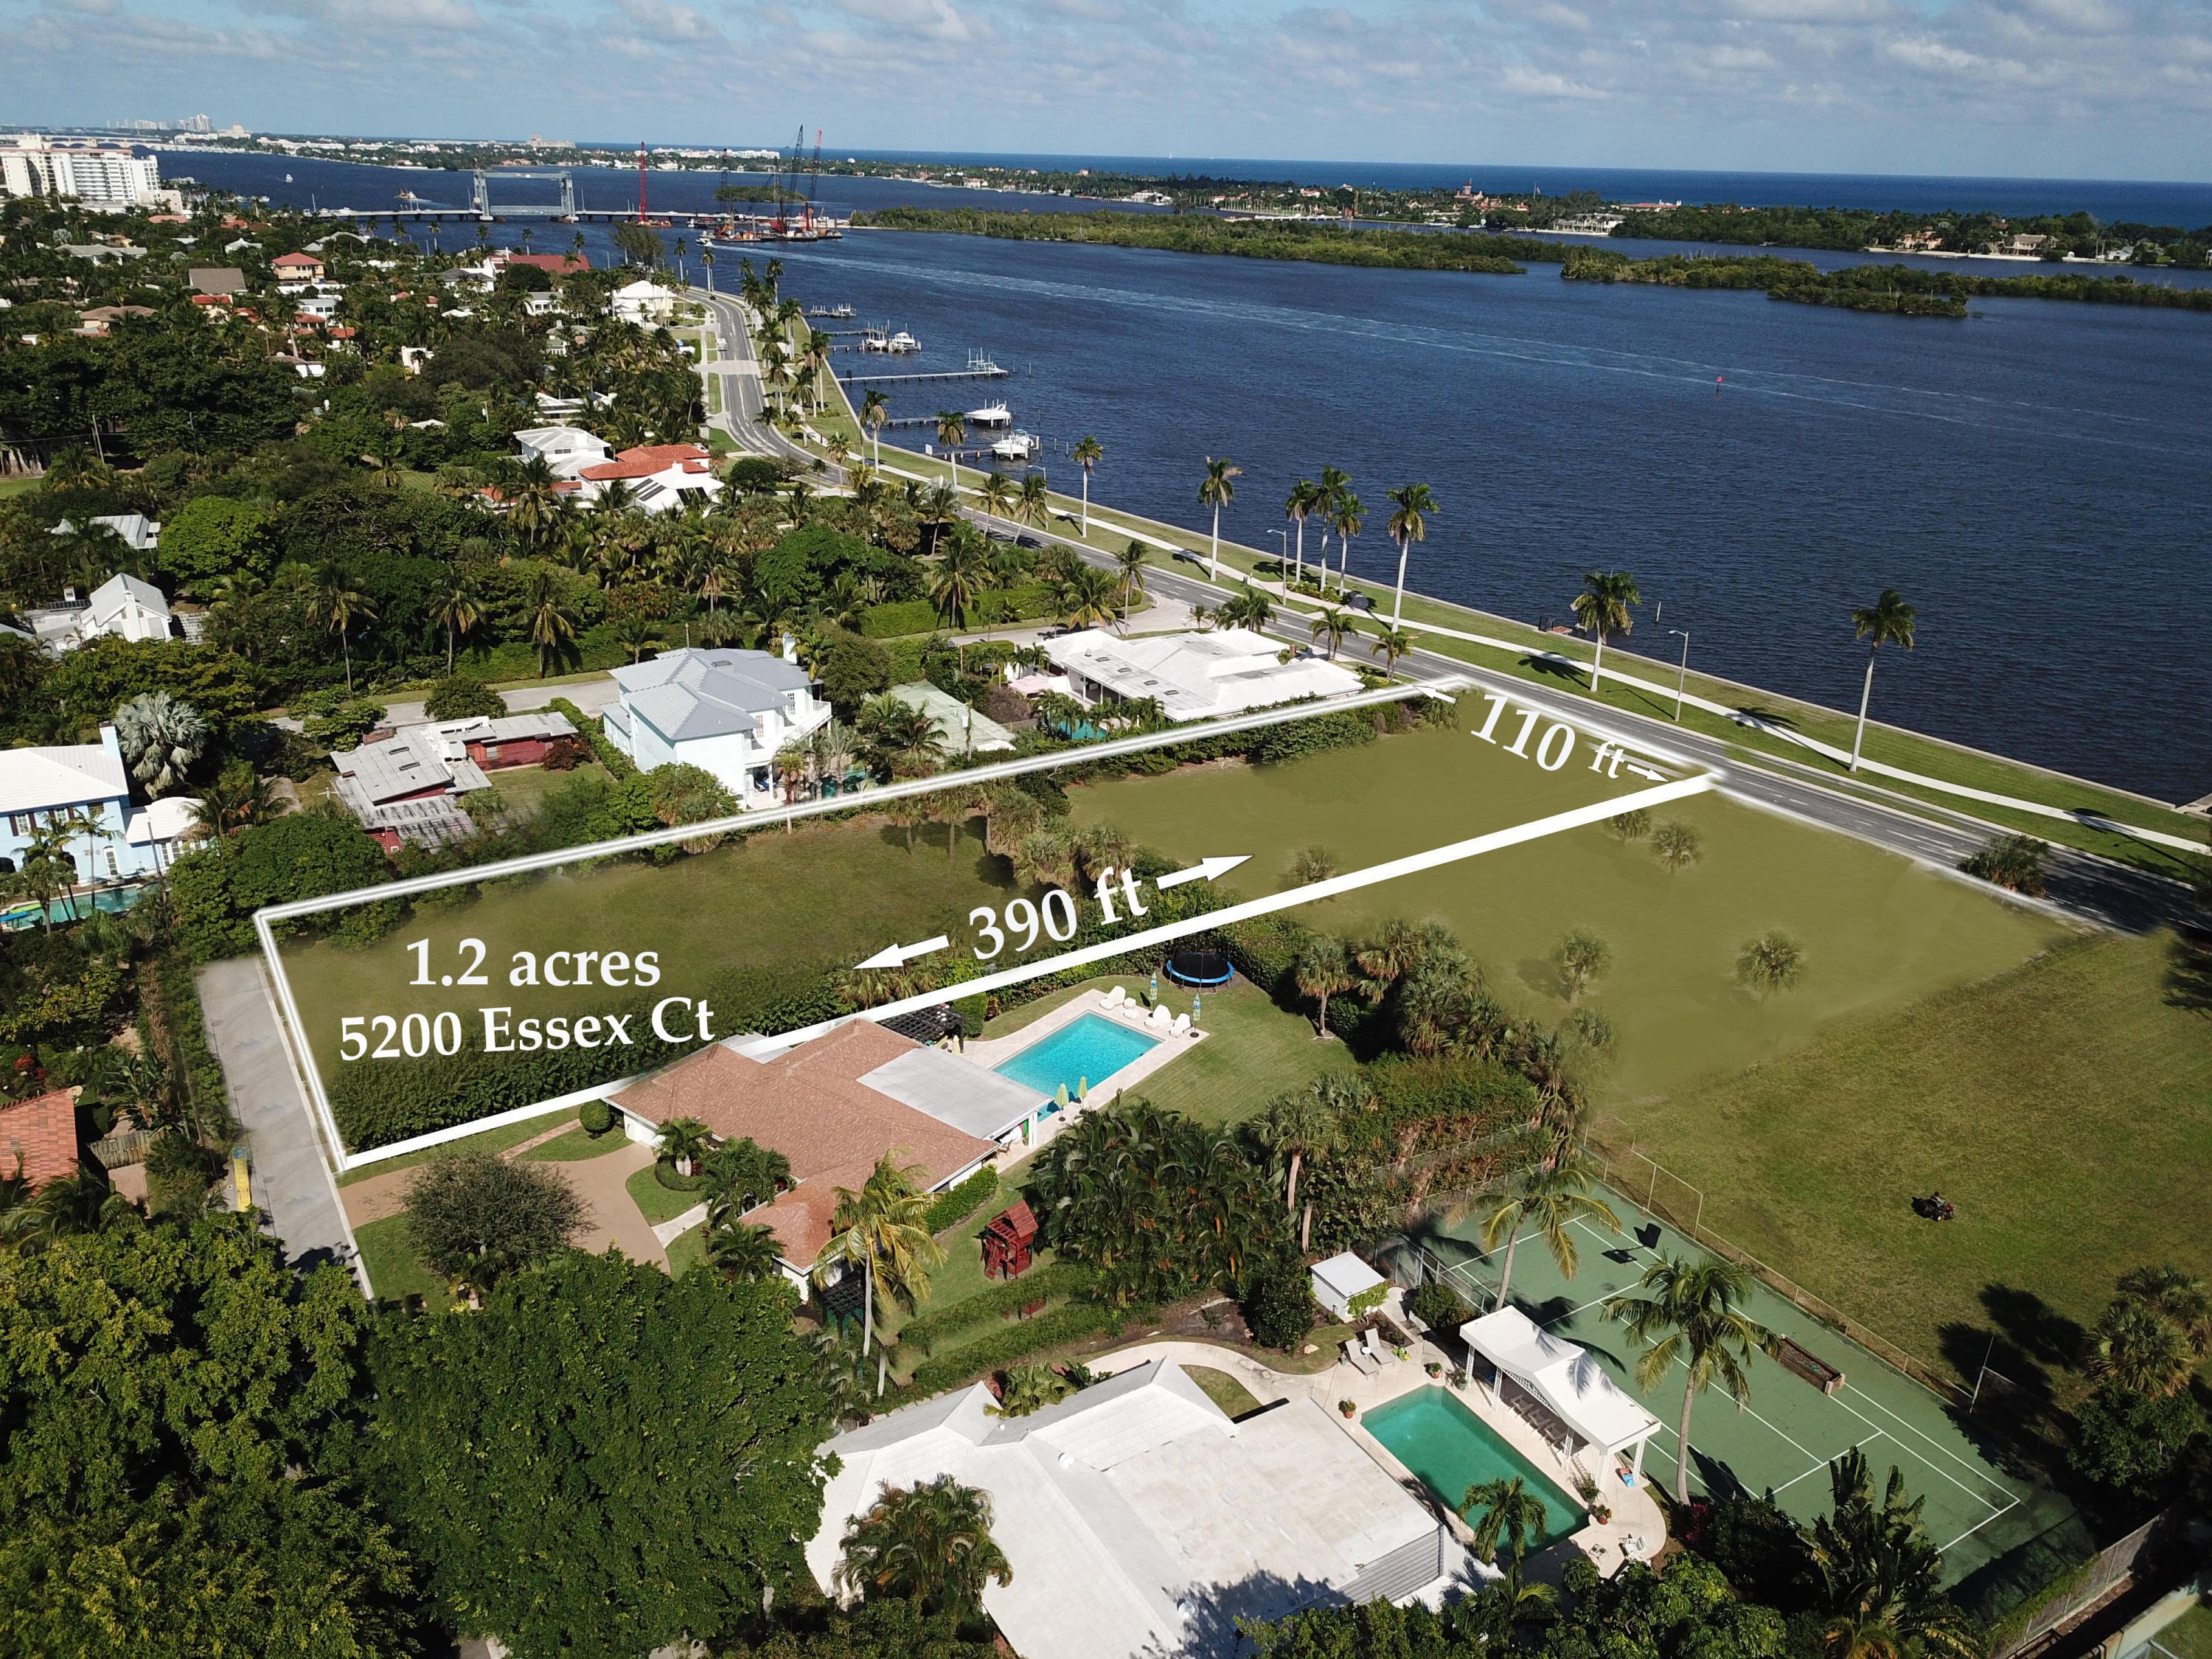 Maison individuelle à vendre en 5200 Essex Court, West Palm Beach, Floride ,33405  , États-Unis